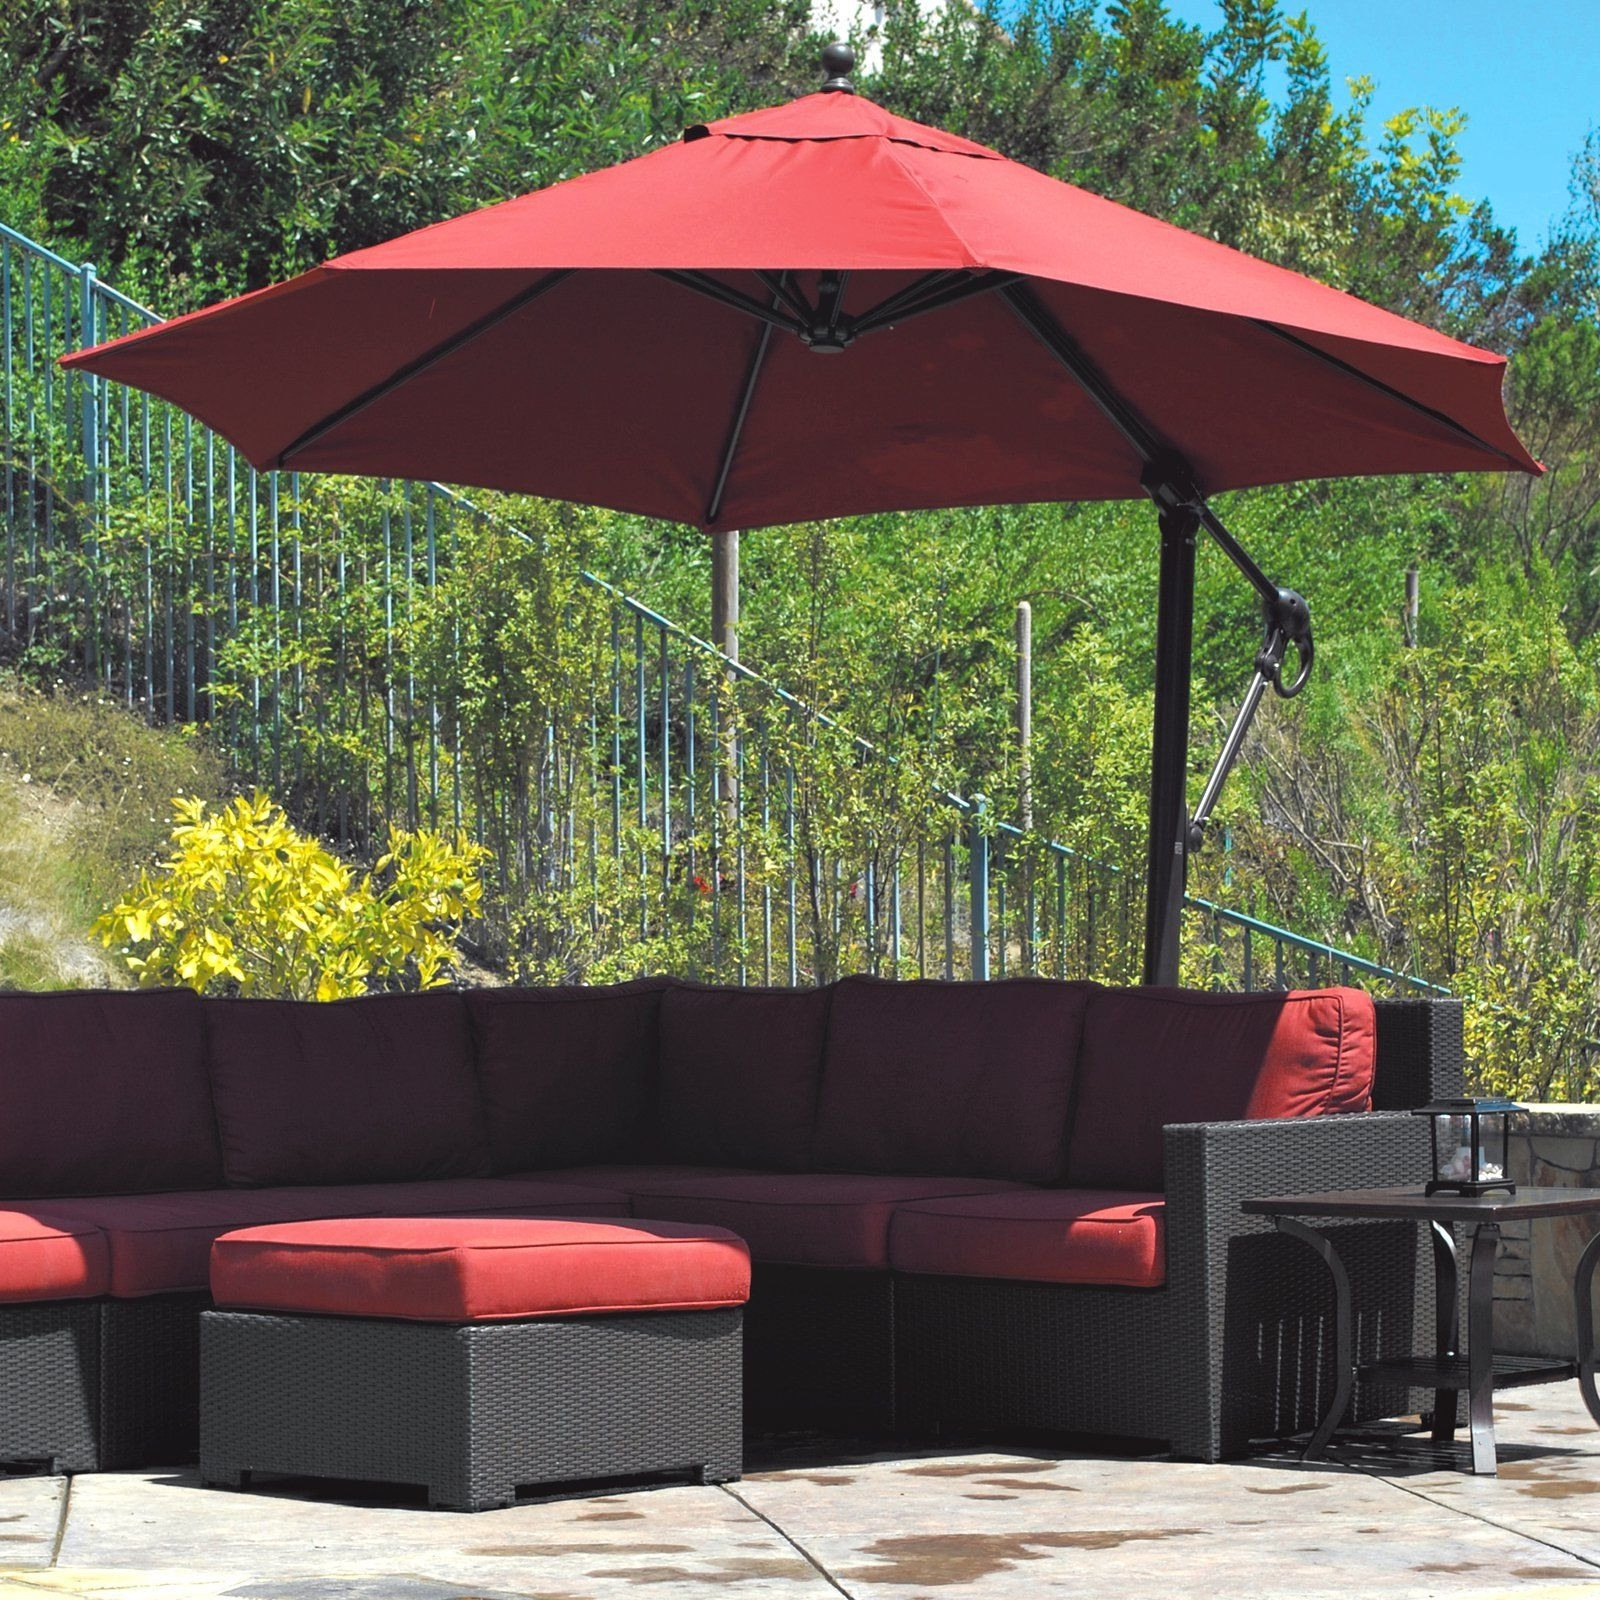 Most Popular Lowes Patio Umbrella – Home Design Ideas For Patio Umbrellas At Lowes (View 8 of 20)